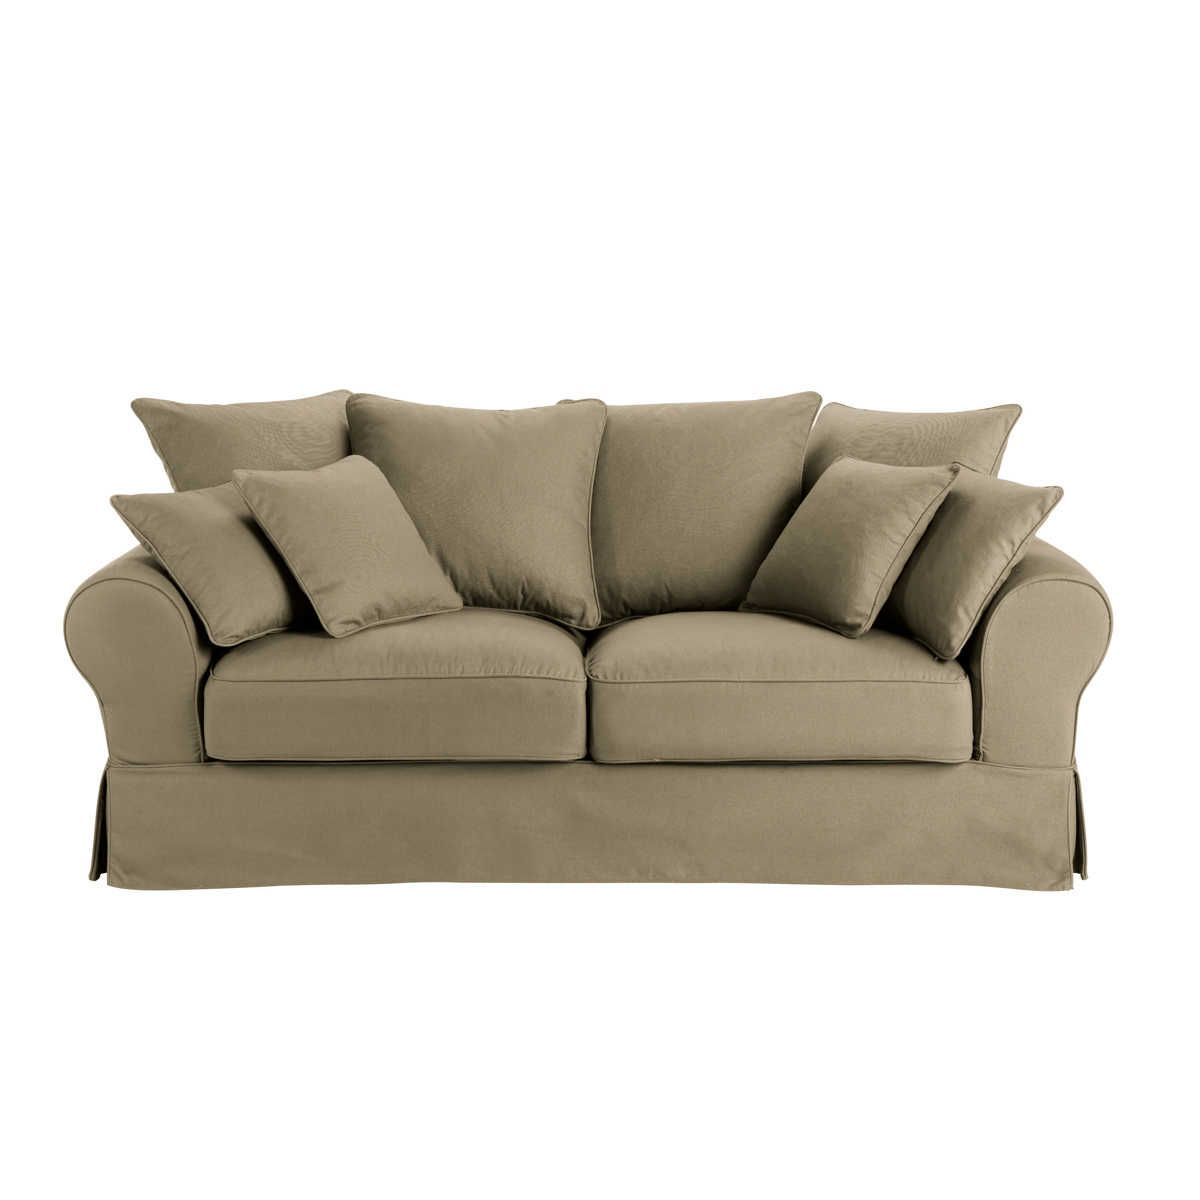 Canapé D'angle Convertible Taupe 3 Seater Cotton Sofa In Taupe Sofas Sofa Sofa Furniture